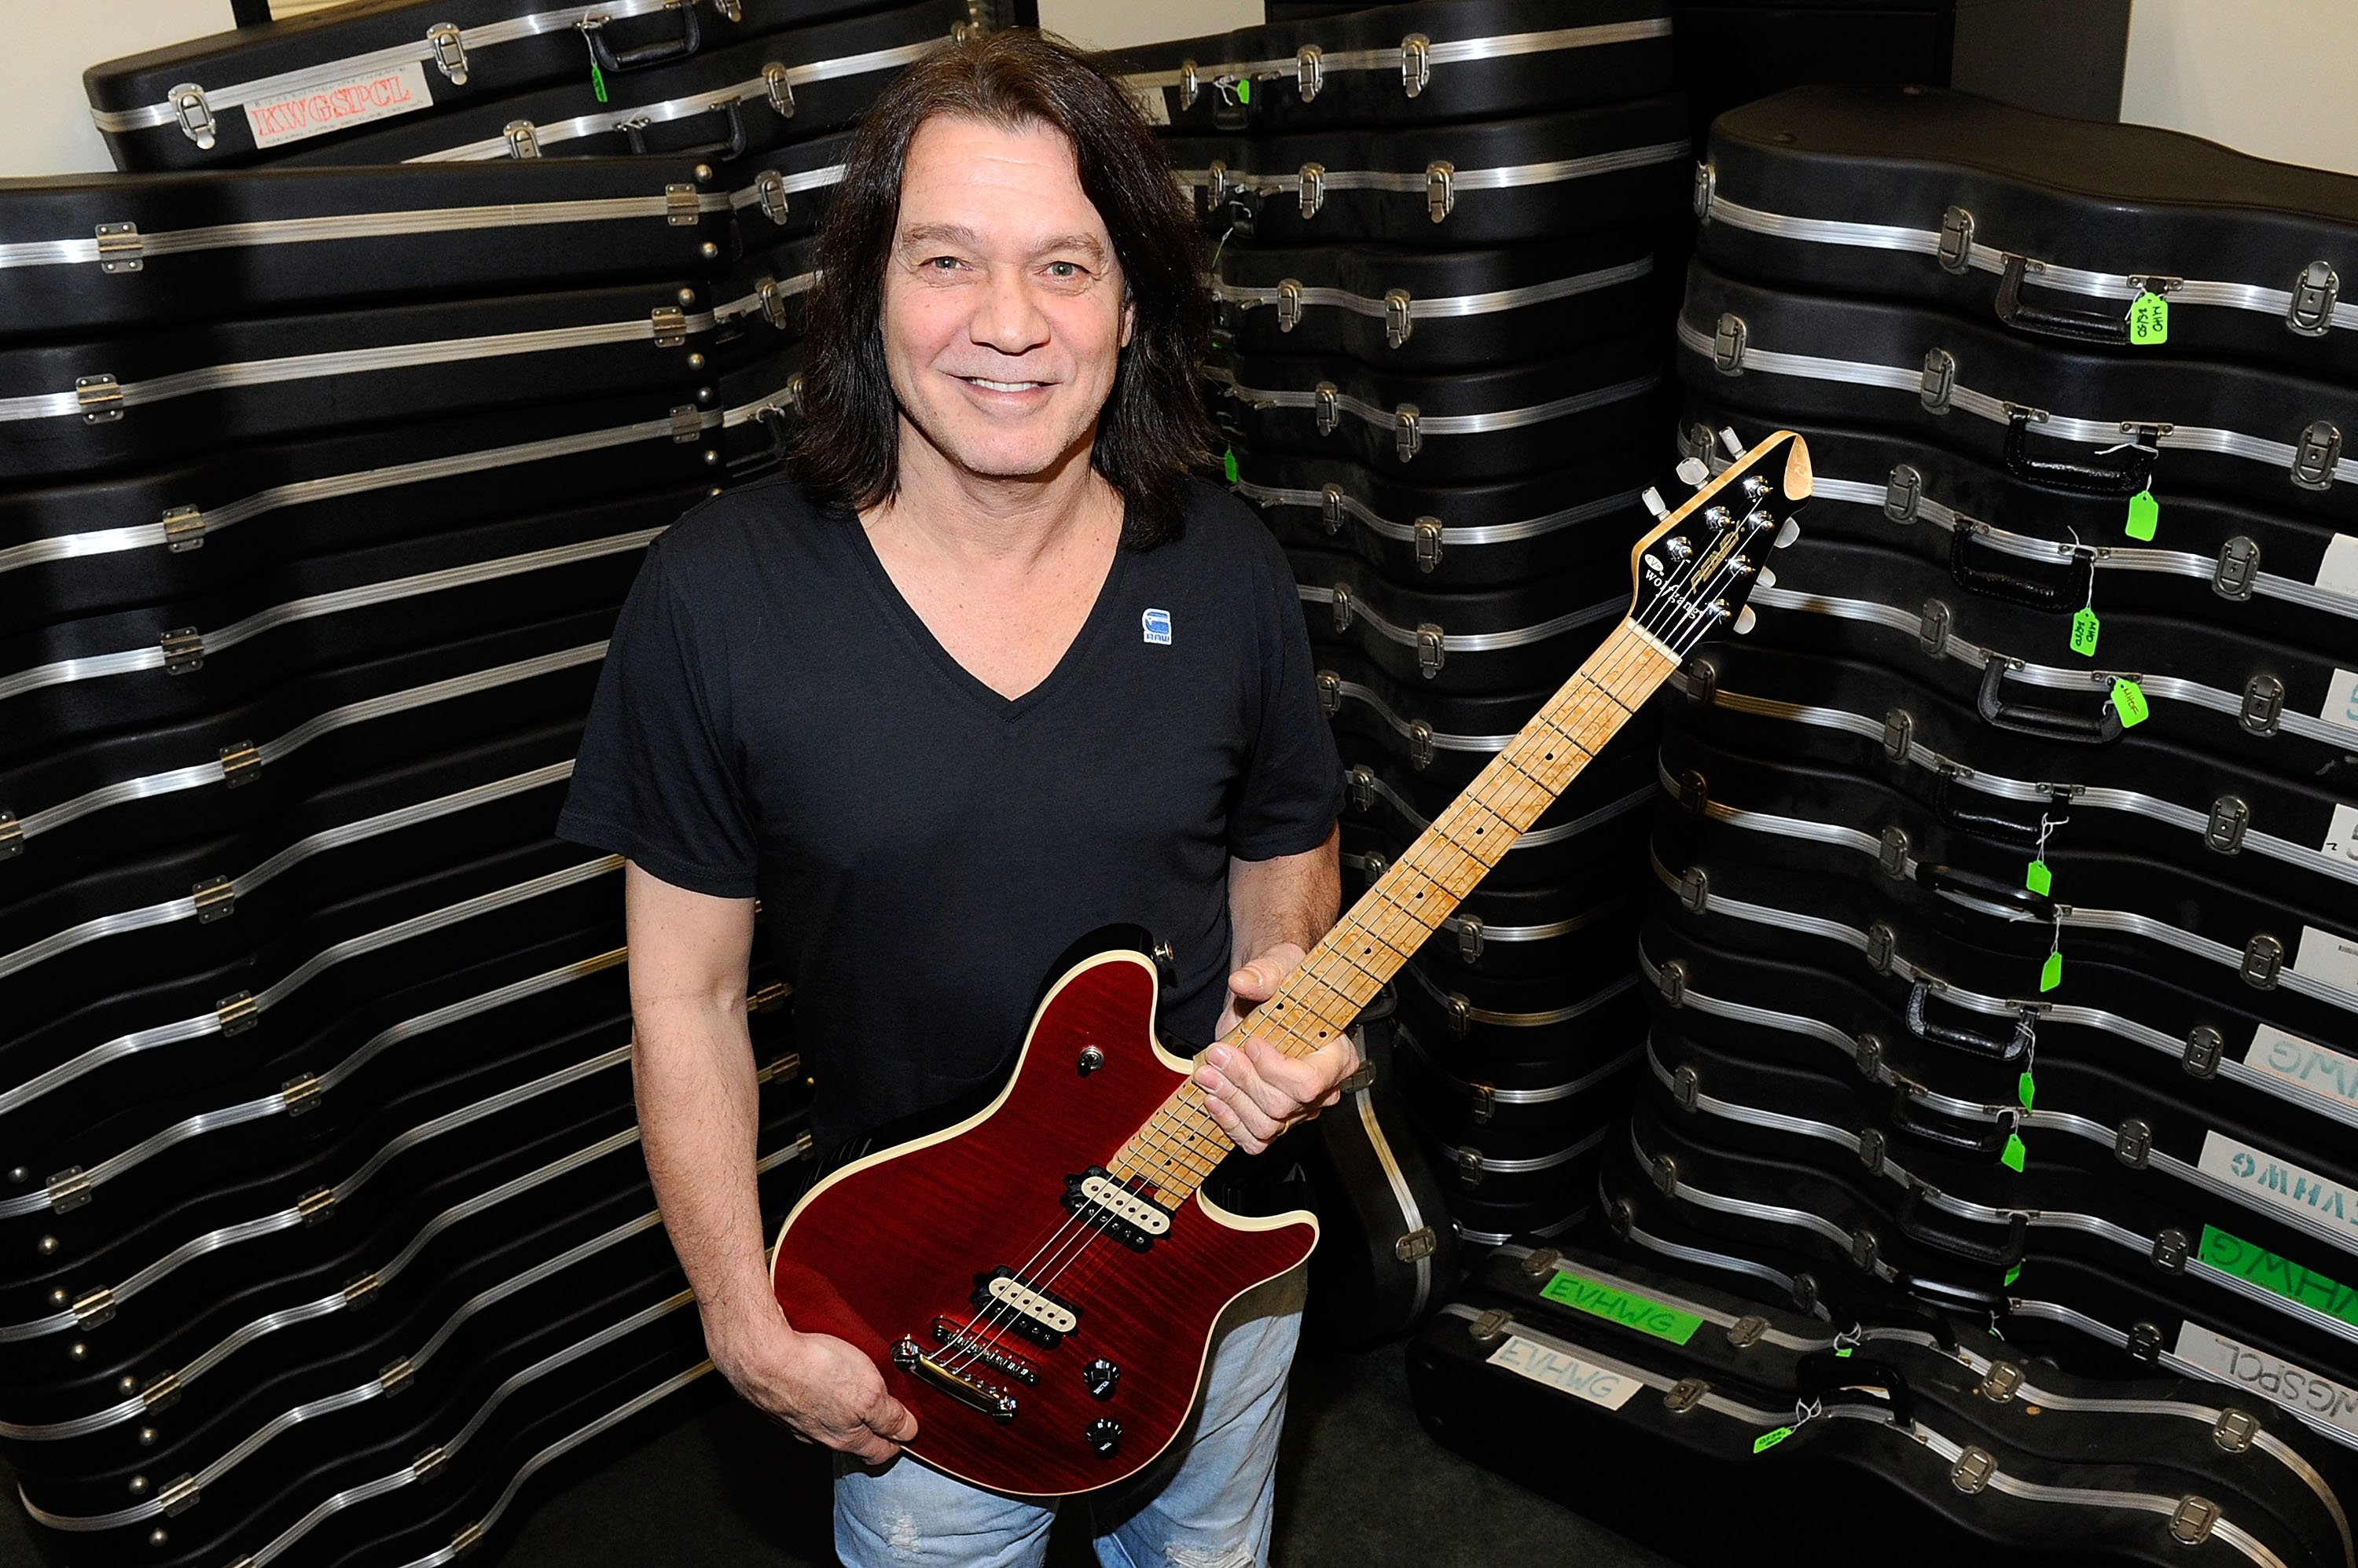 Eddie Van Halen donates 75 electric guitars from his personal collection to The Mr. Holland's Opus Foundation, on January 9, 2012 in Studio City, California | Photo: Getty Images